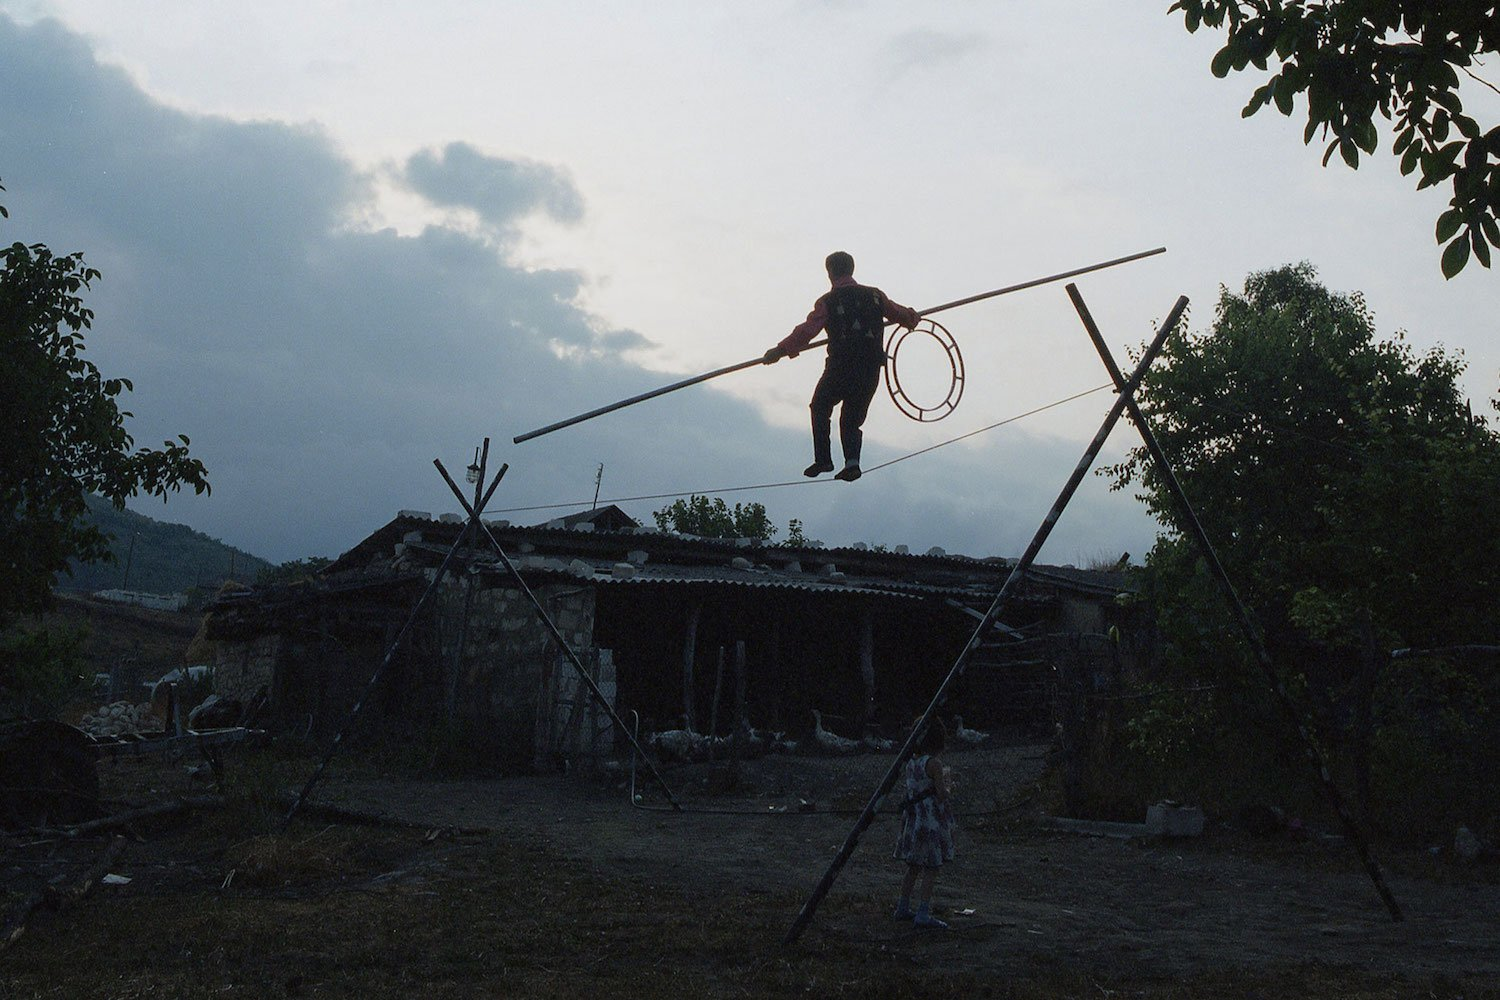 Saving the ancient tightrope tradition of Dagestan